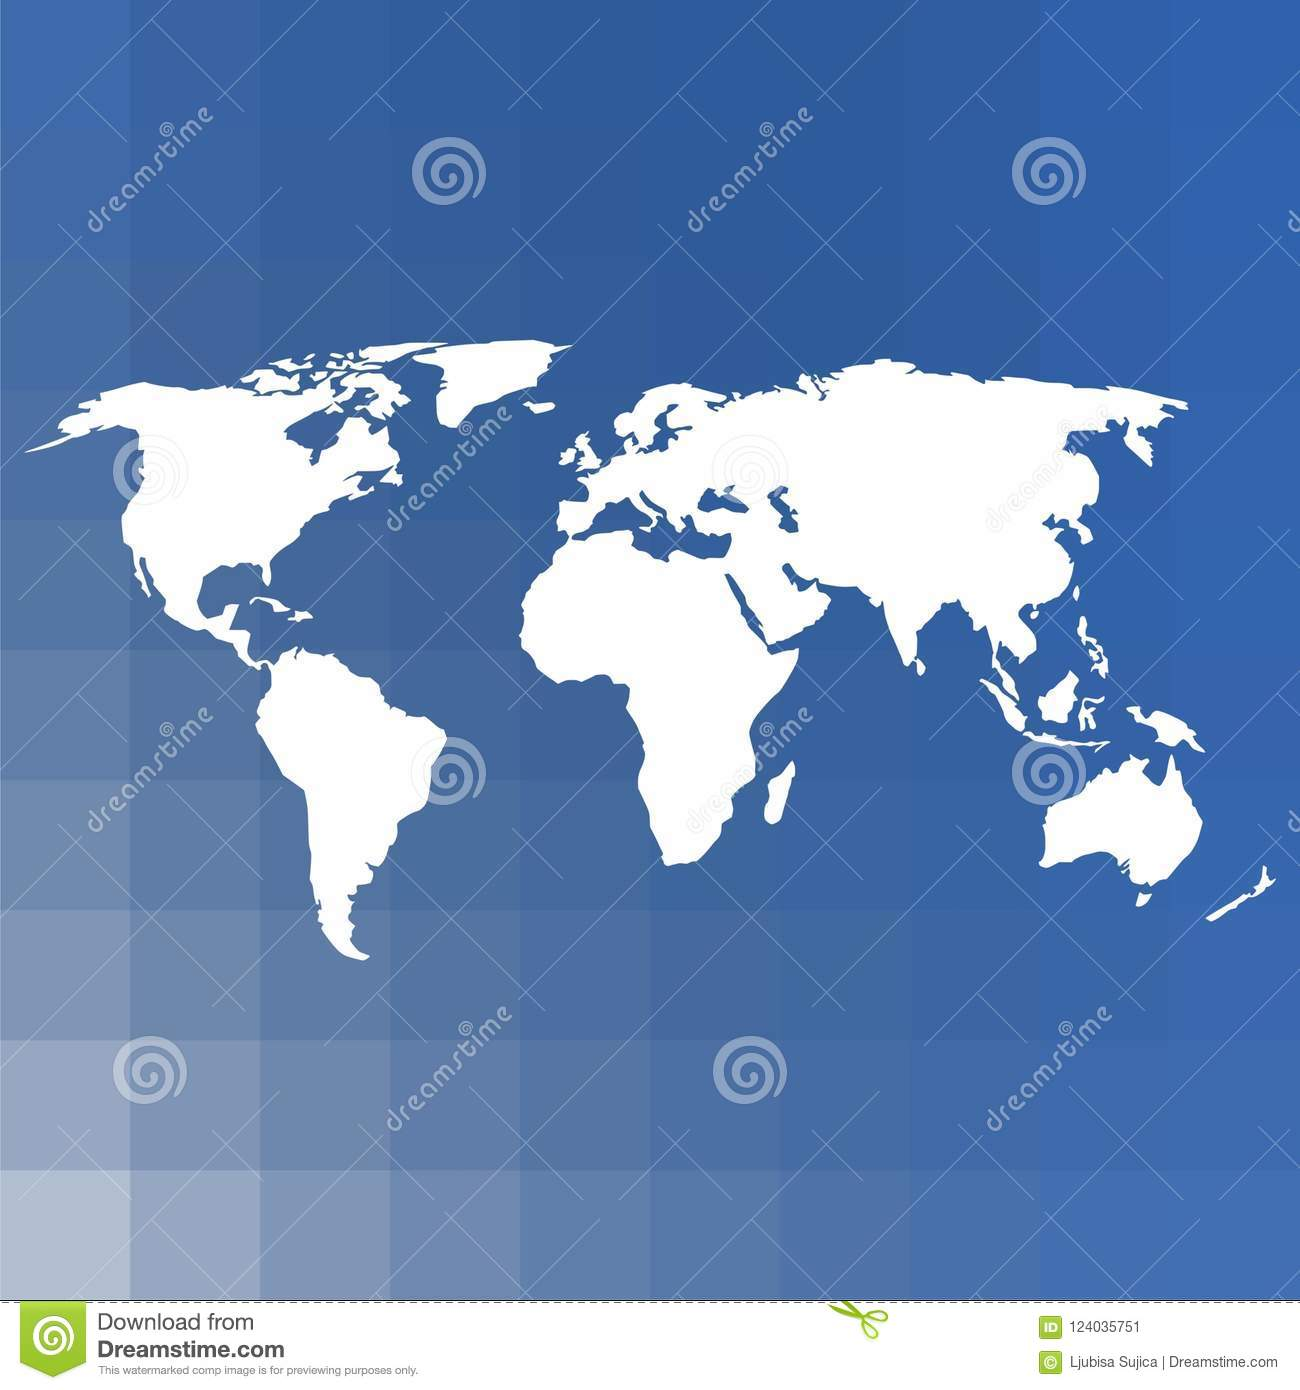 Blank world map vector illustration on blue background stock vector download blank world map vector illustration on blue background stock vector illustration of abstract gumiabroncs Image collections